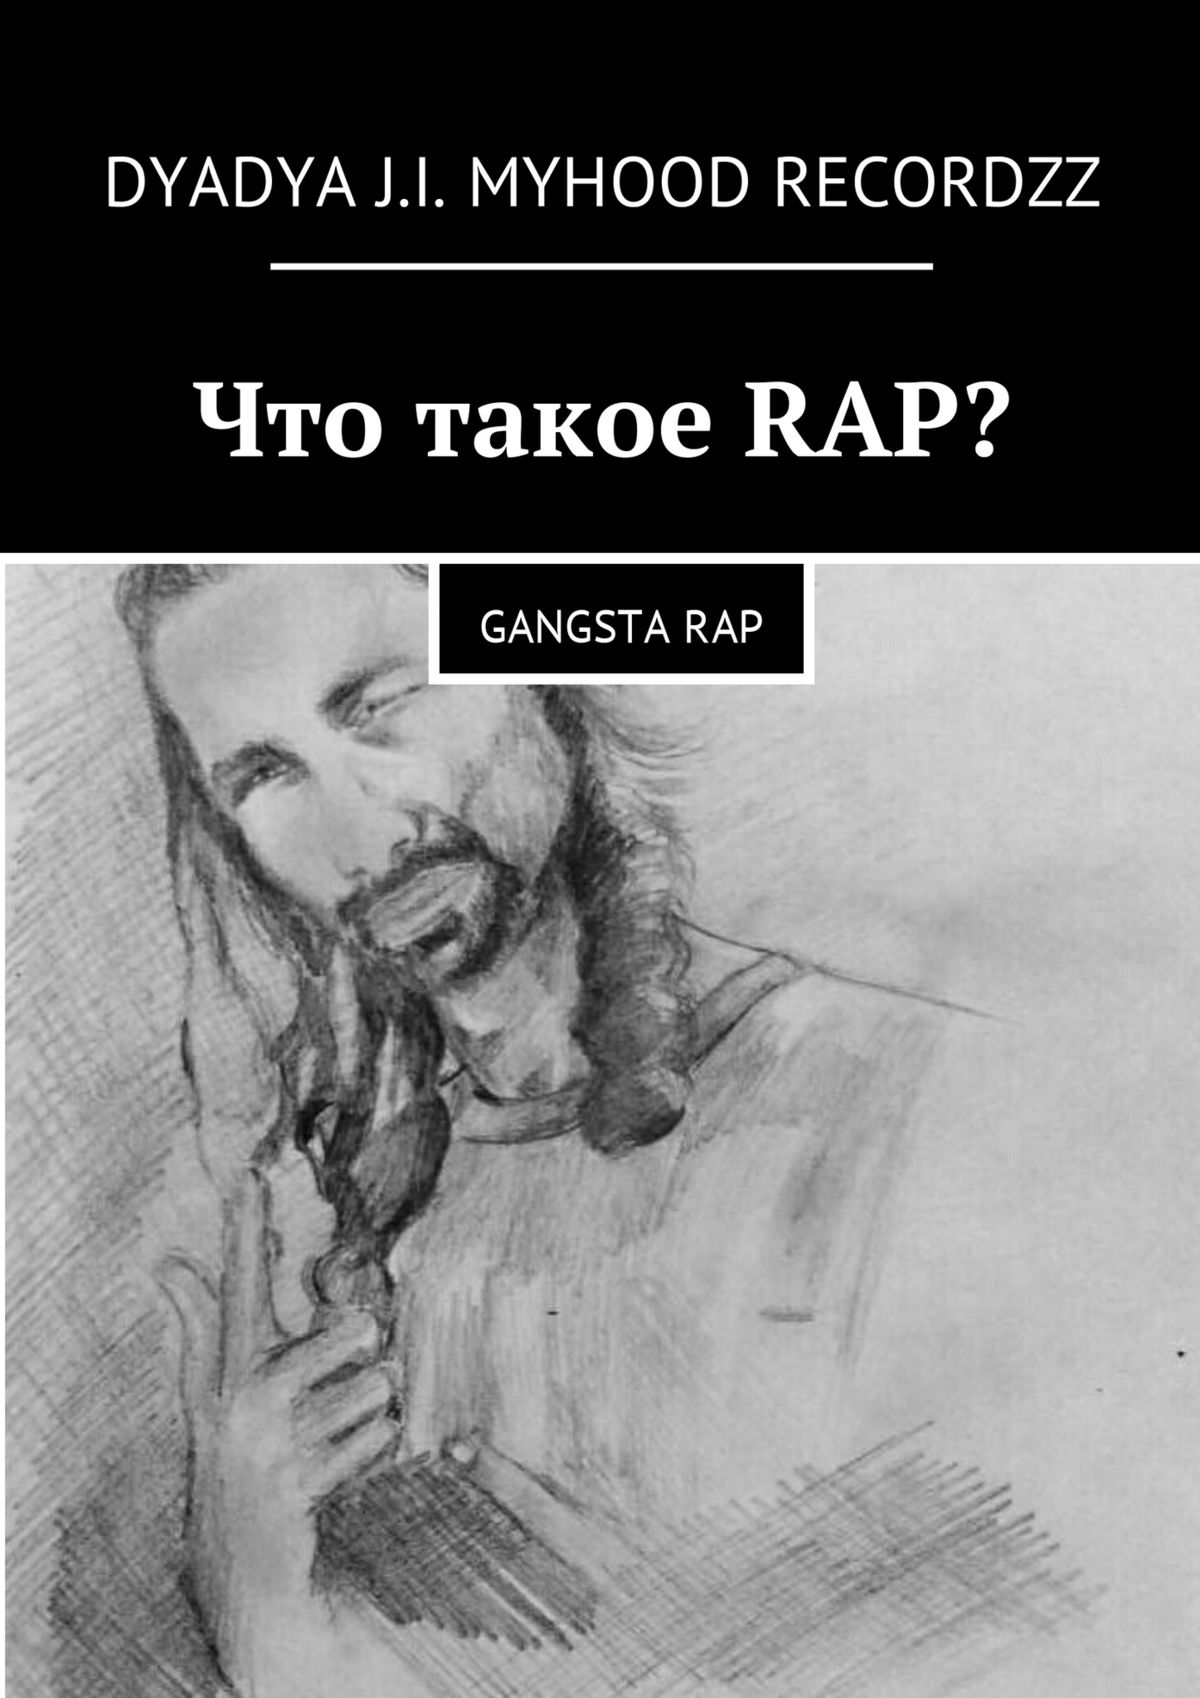 Dyadya J.I. MyHooD Recordzz Что такое RAP? Gangsta rap gangsta rap